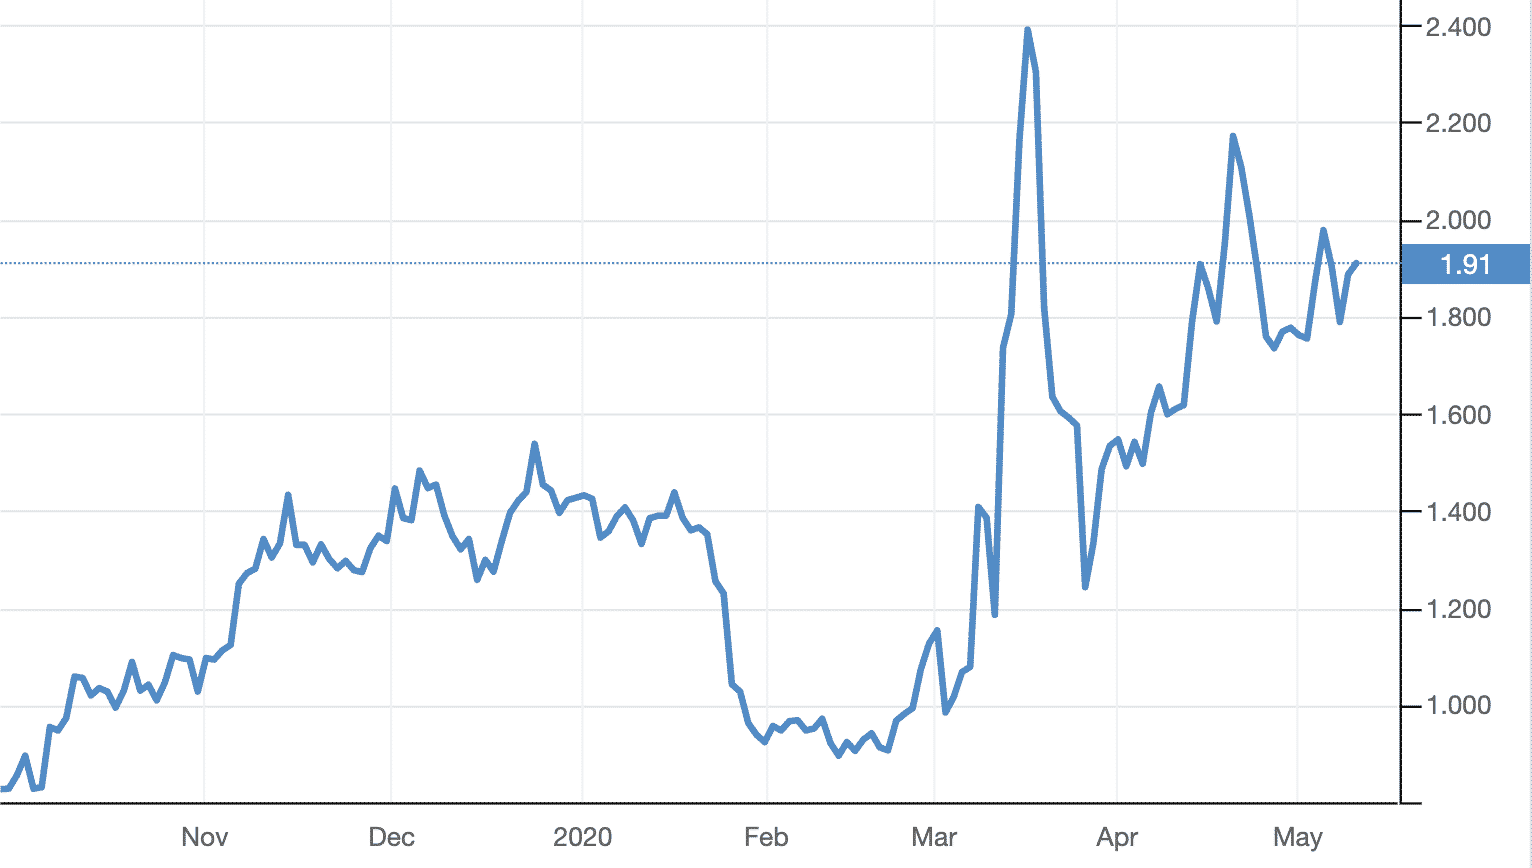 Italy 10 year bond yield, May 2020